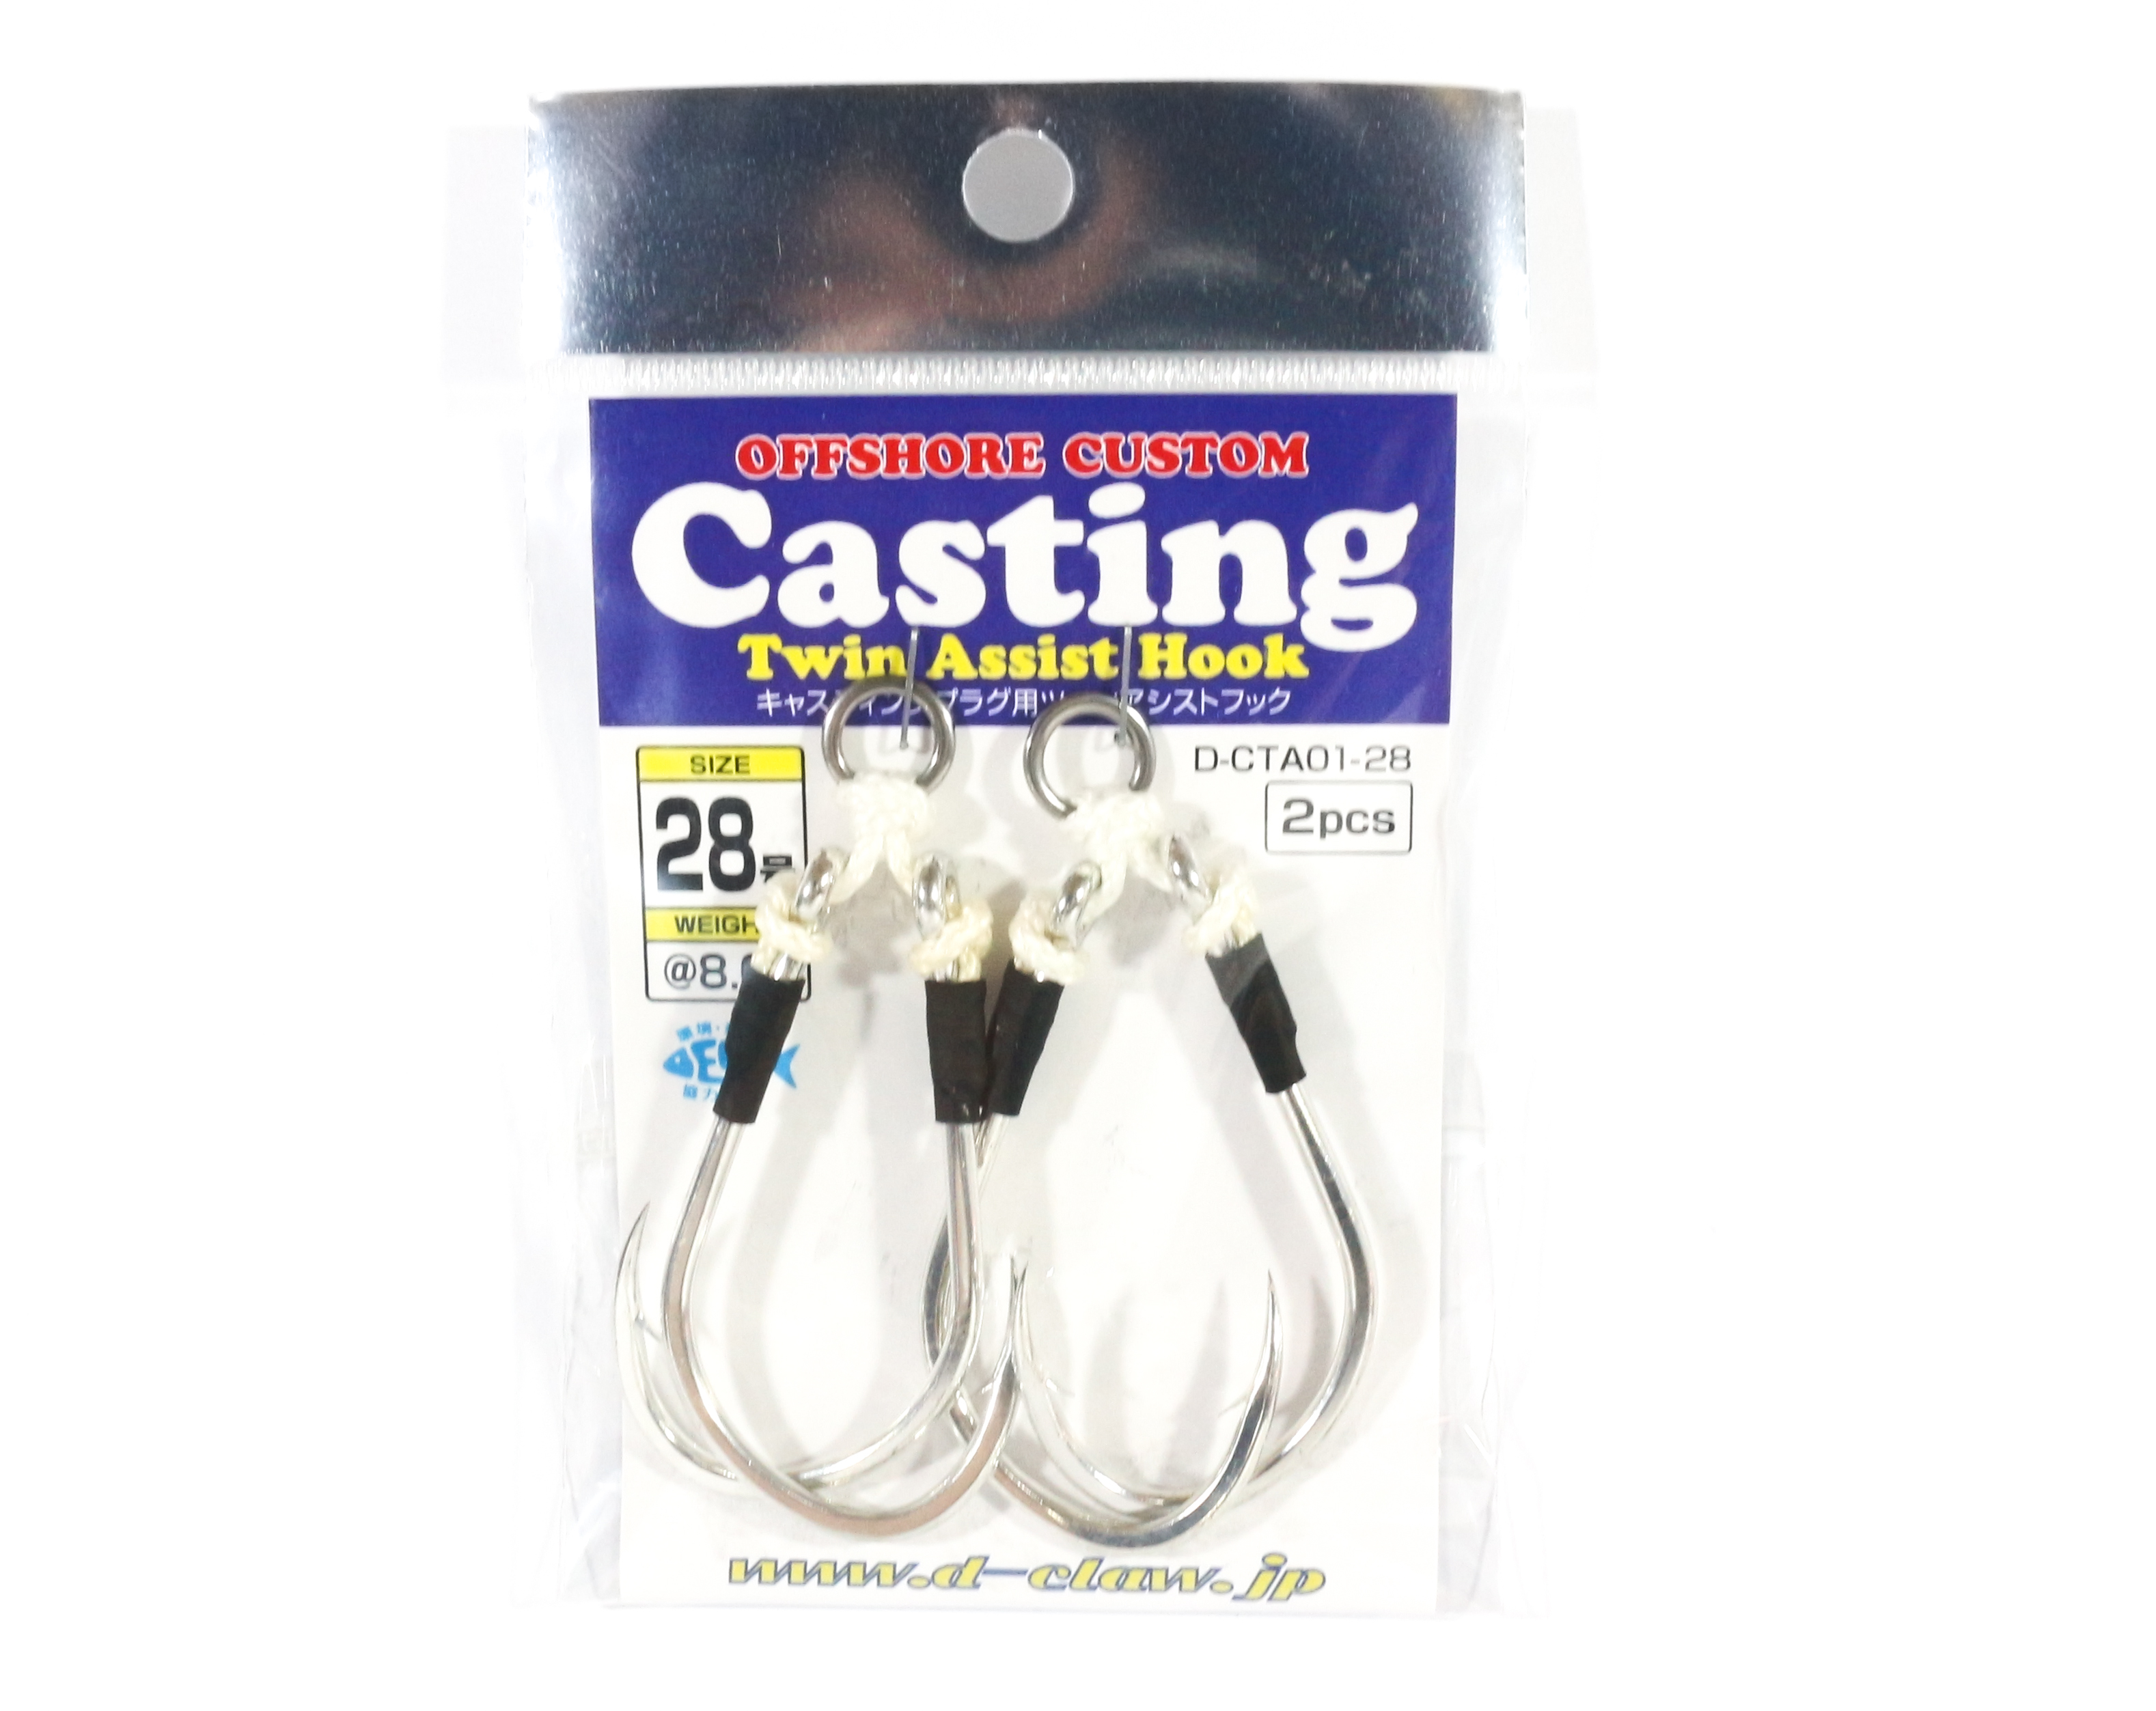 Sale D-Claw D-CTA01-26 Twin Assist Hook Plug and Slow Jig Size 28 (4/0) (1991)